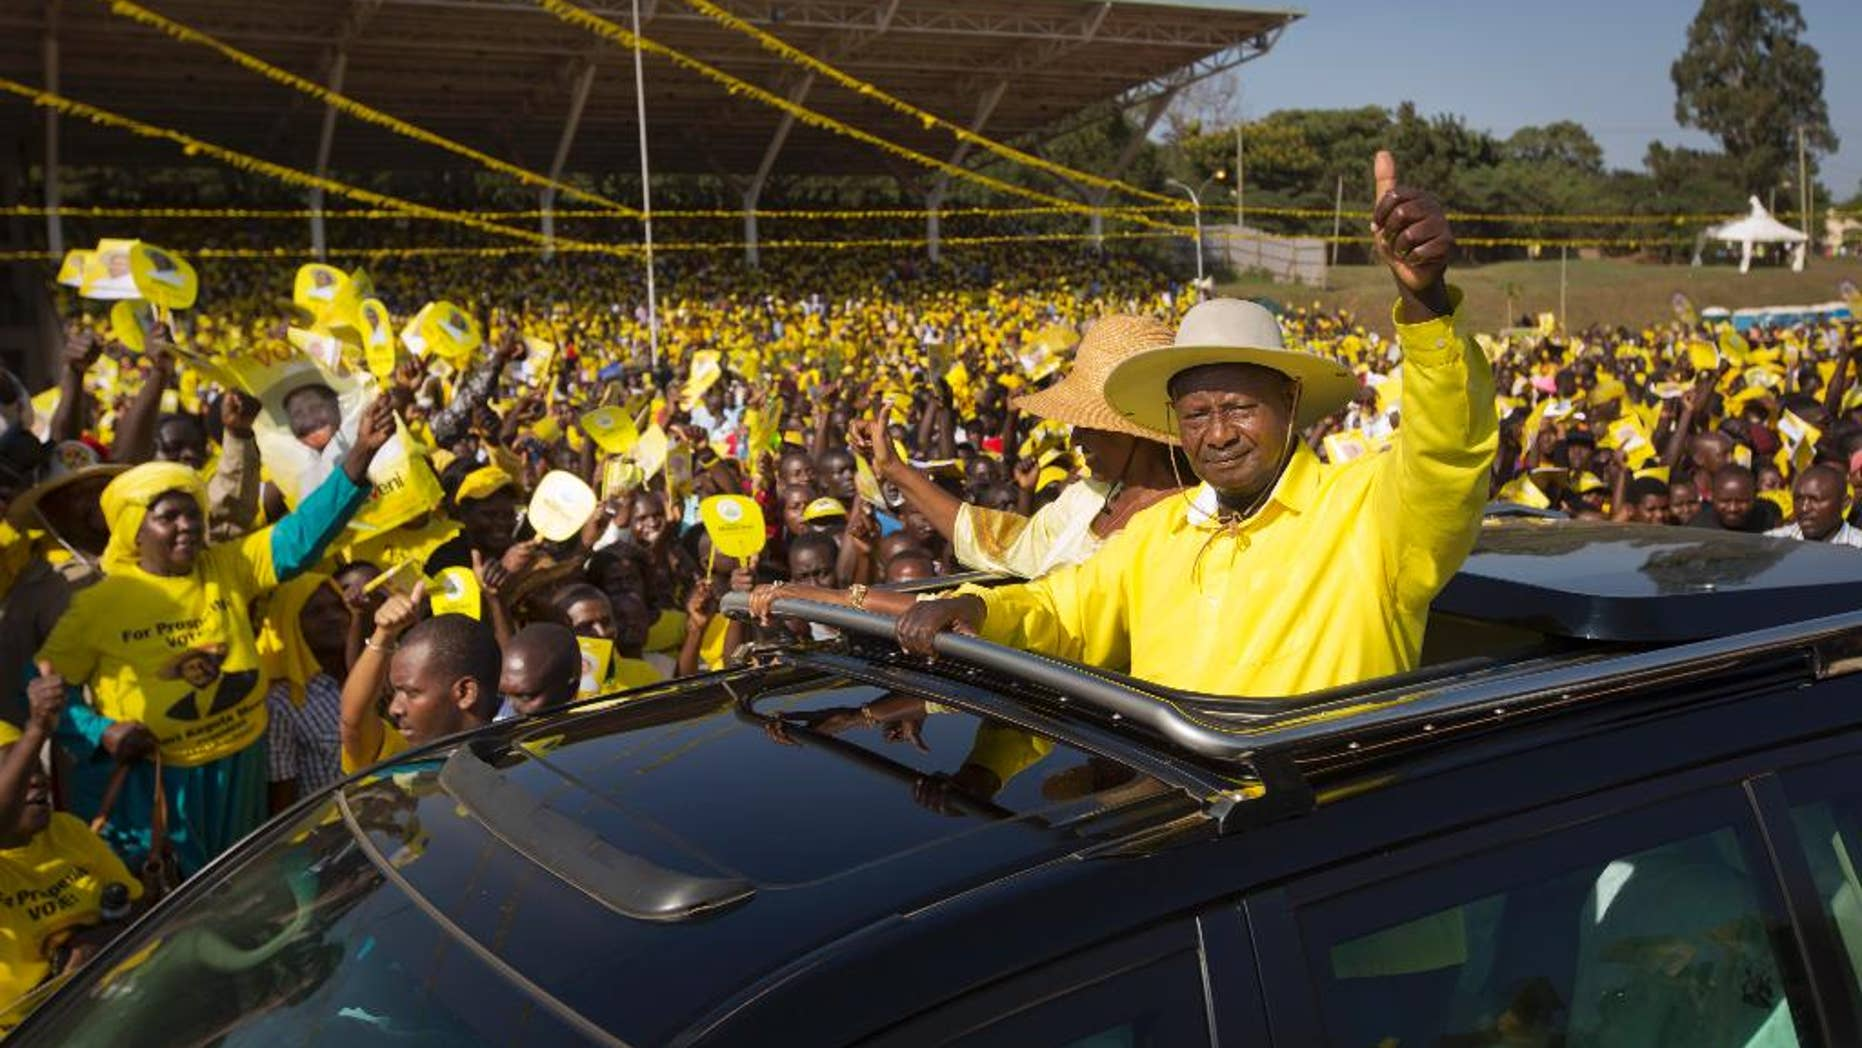 Feb. 16, 2016: Uganda's long-time President Yoweri Museveni waves to supporters from the sunroof of his vehicle as he arrives for an election rally at Kololo Airstrip in Kampala, Uganda.